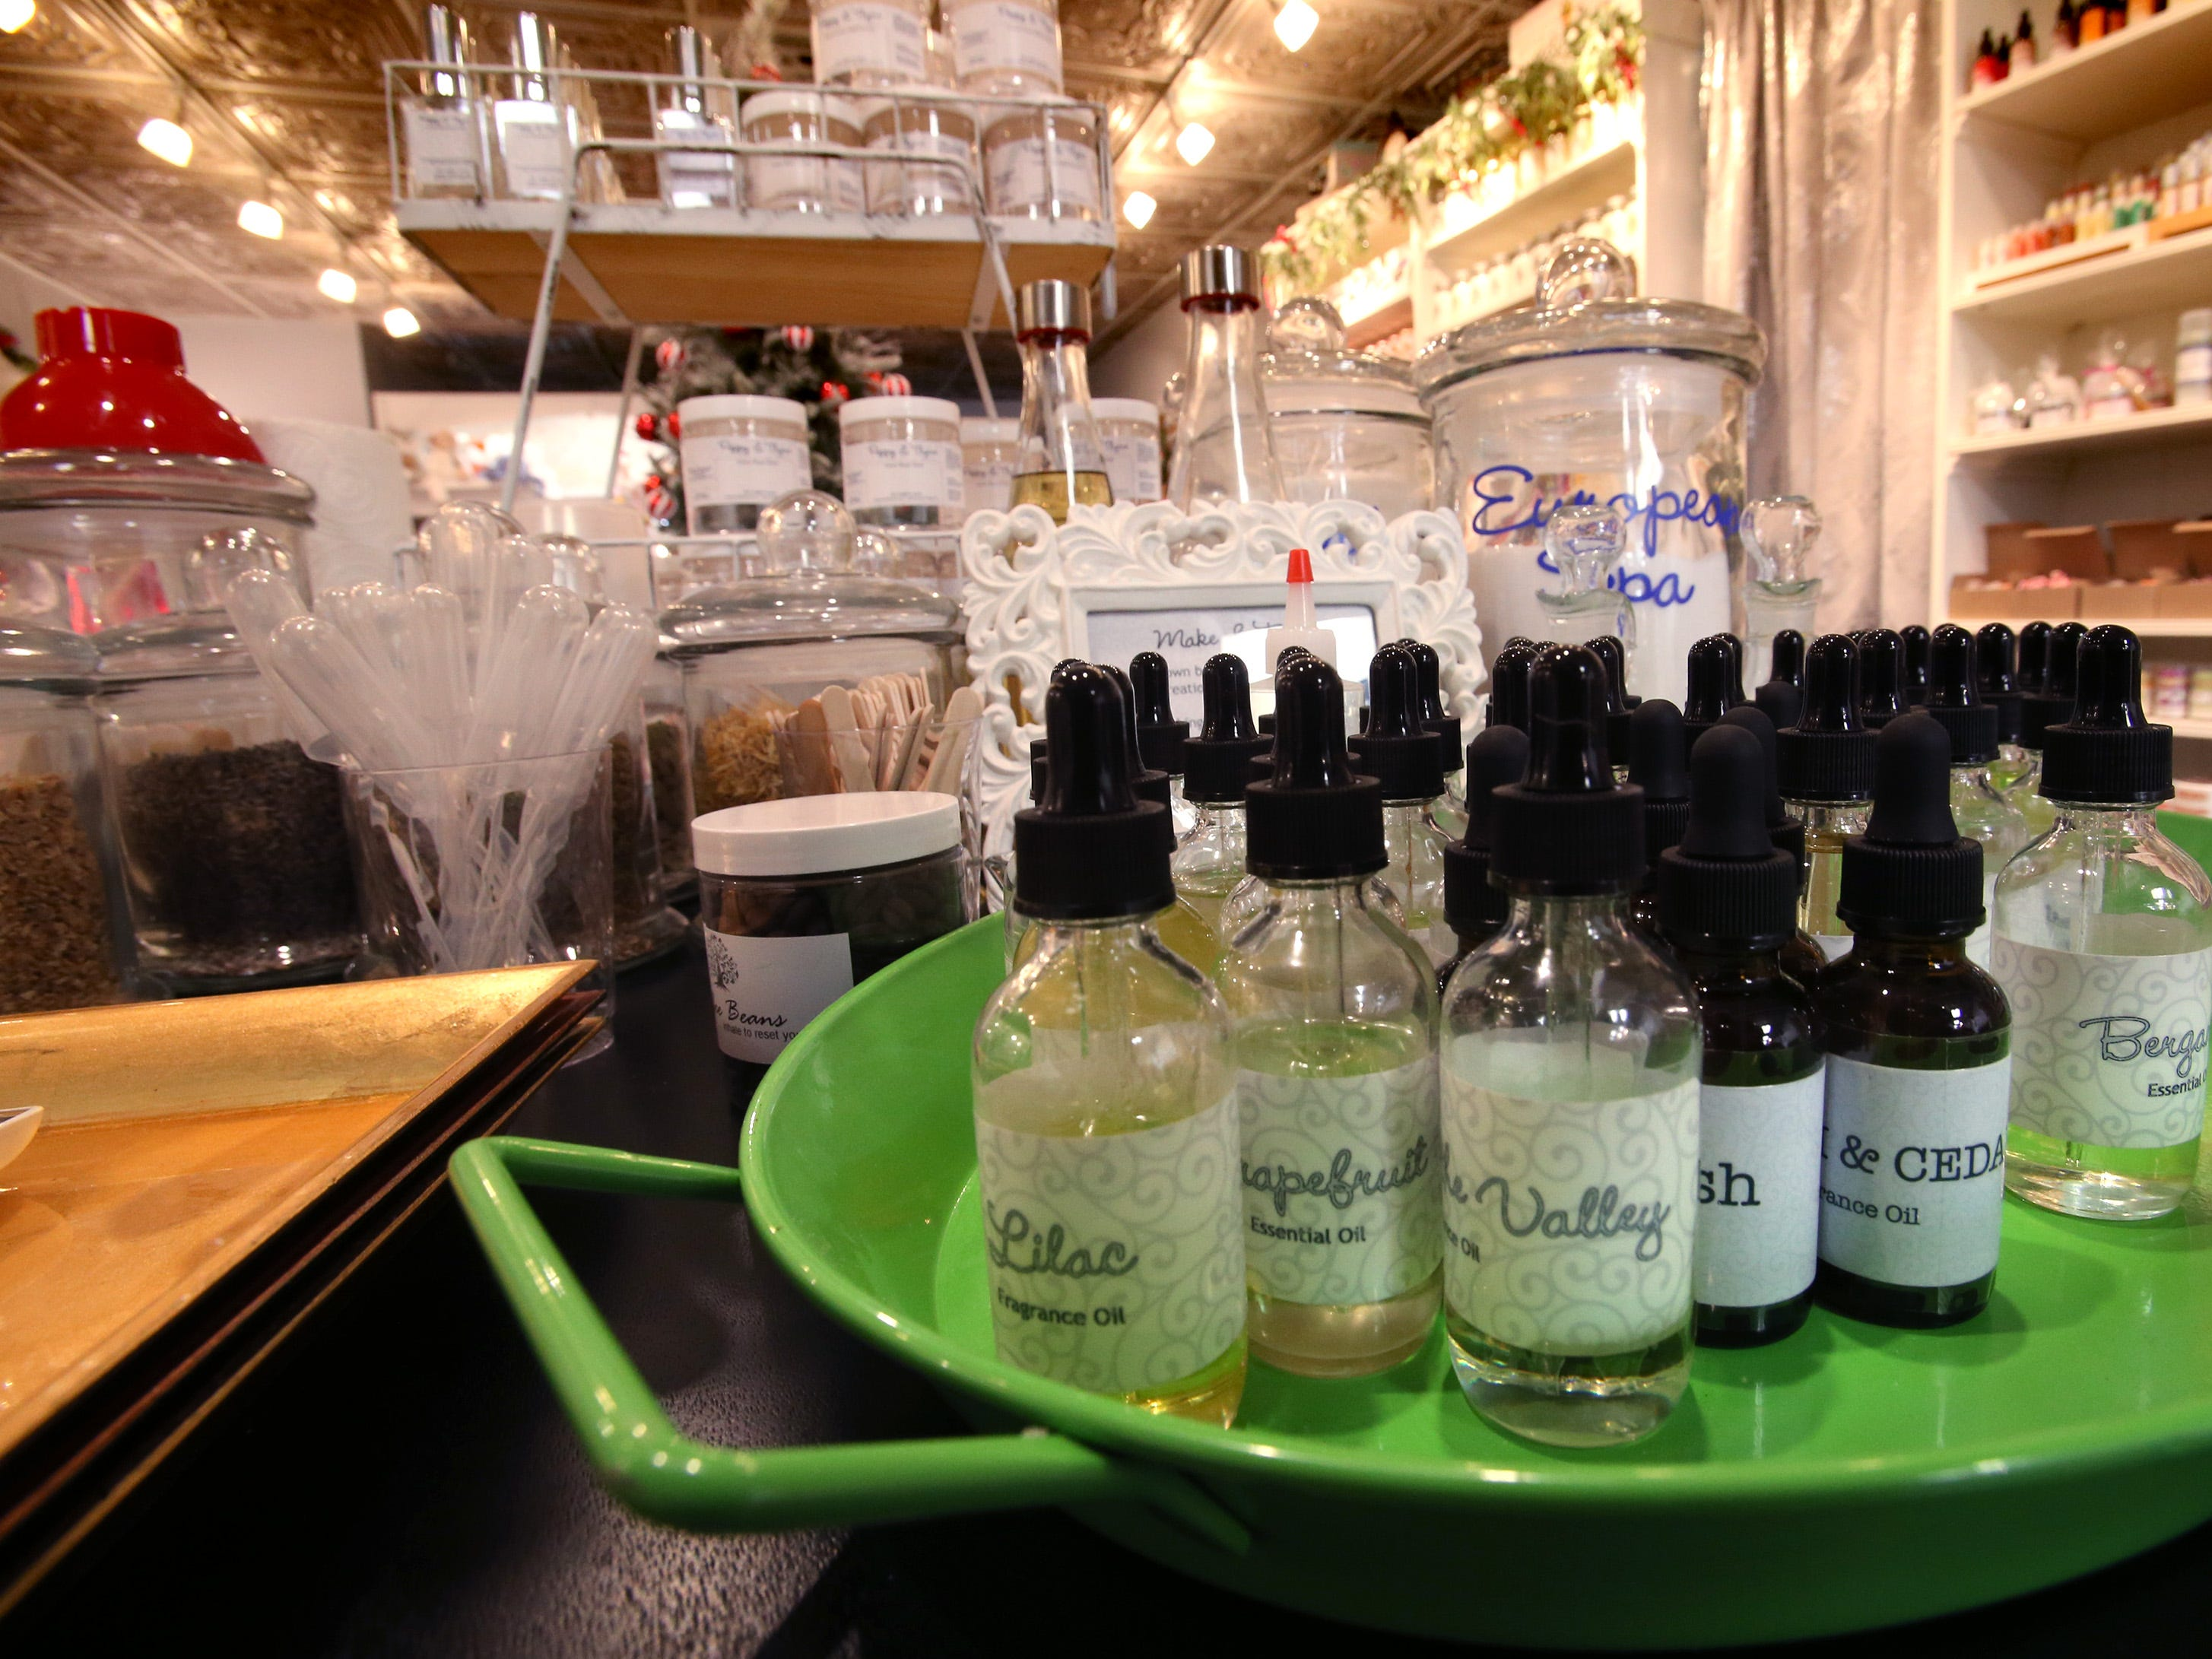 Poppy & Thyme battles big box retail with unique products, like customer-made perfume, cologne and bath salts at N88 W16726 Appleton Ave.